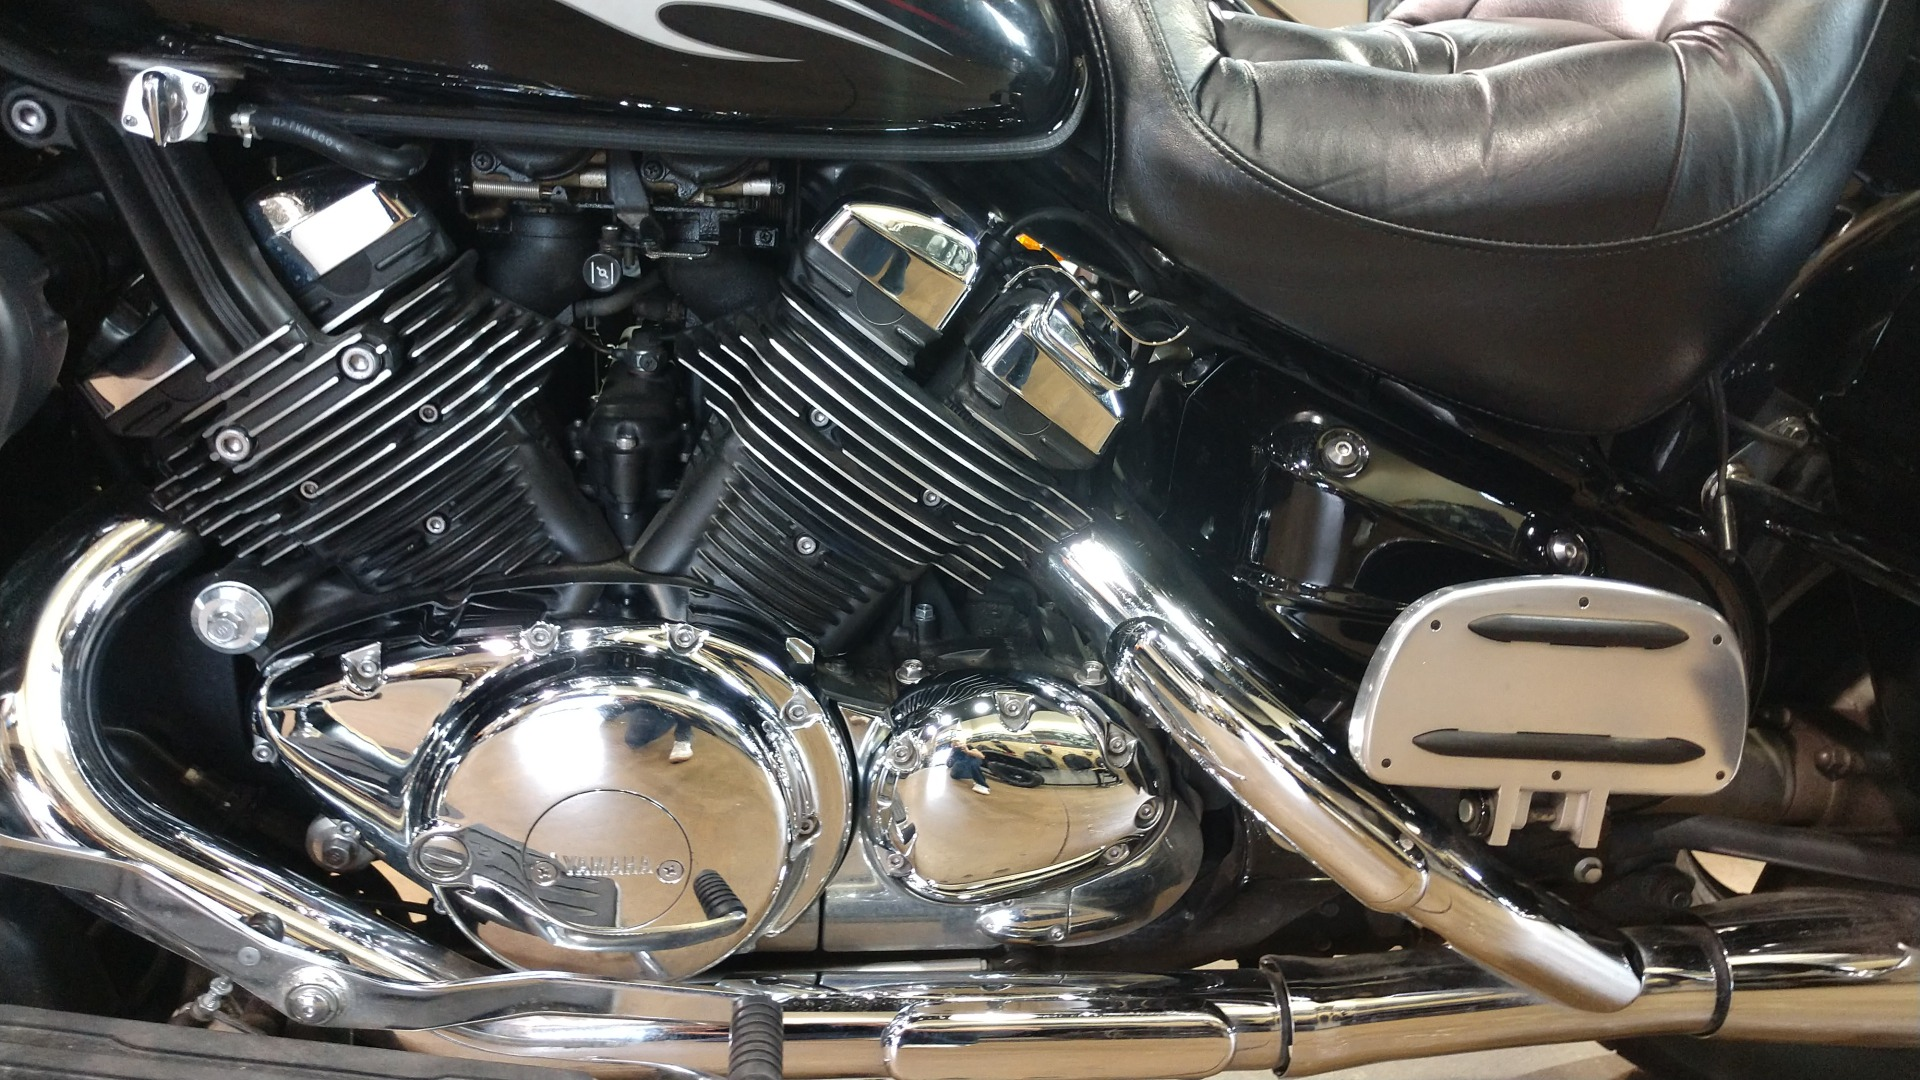 2010 Yamaha Royal Star Venture S in Denver, Colorado - Photo 6